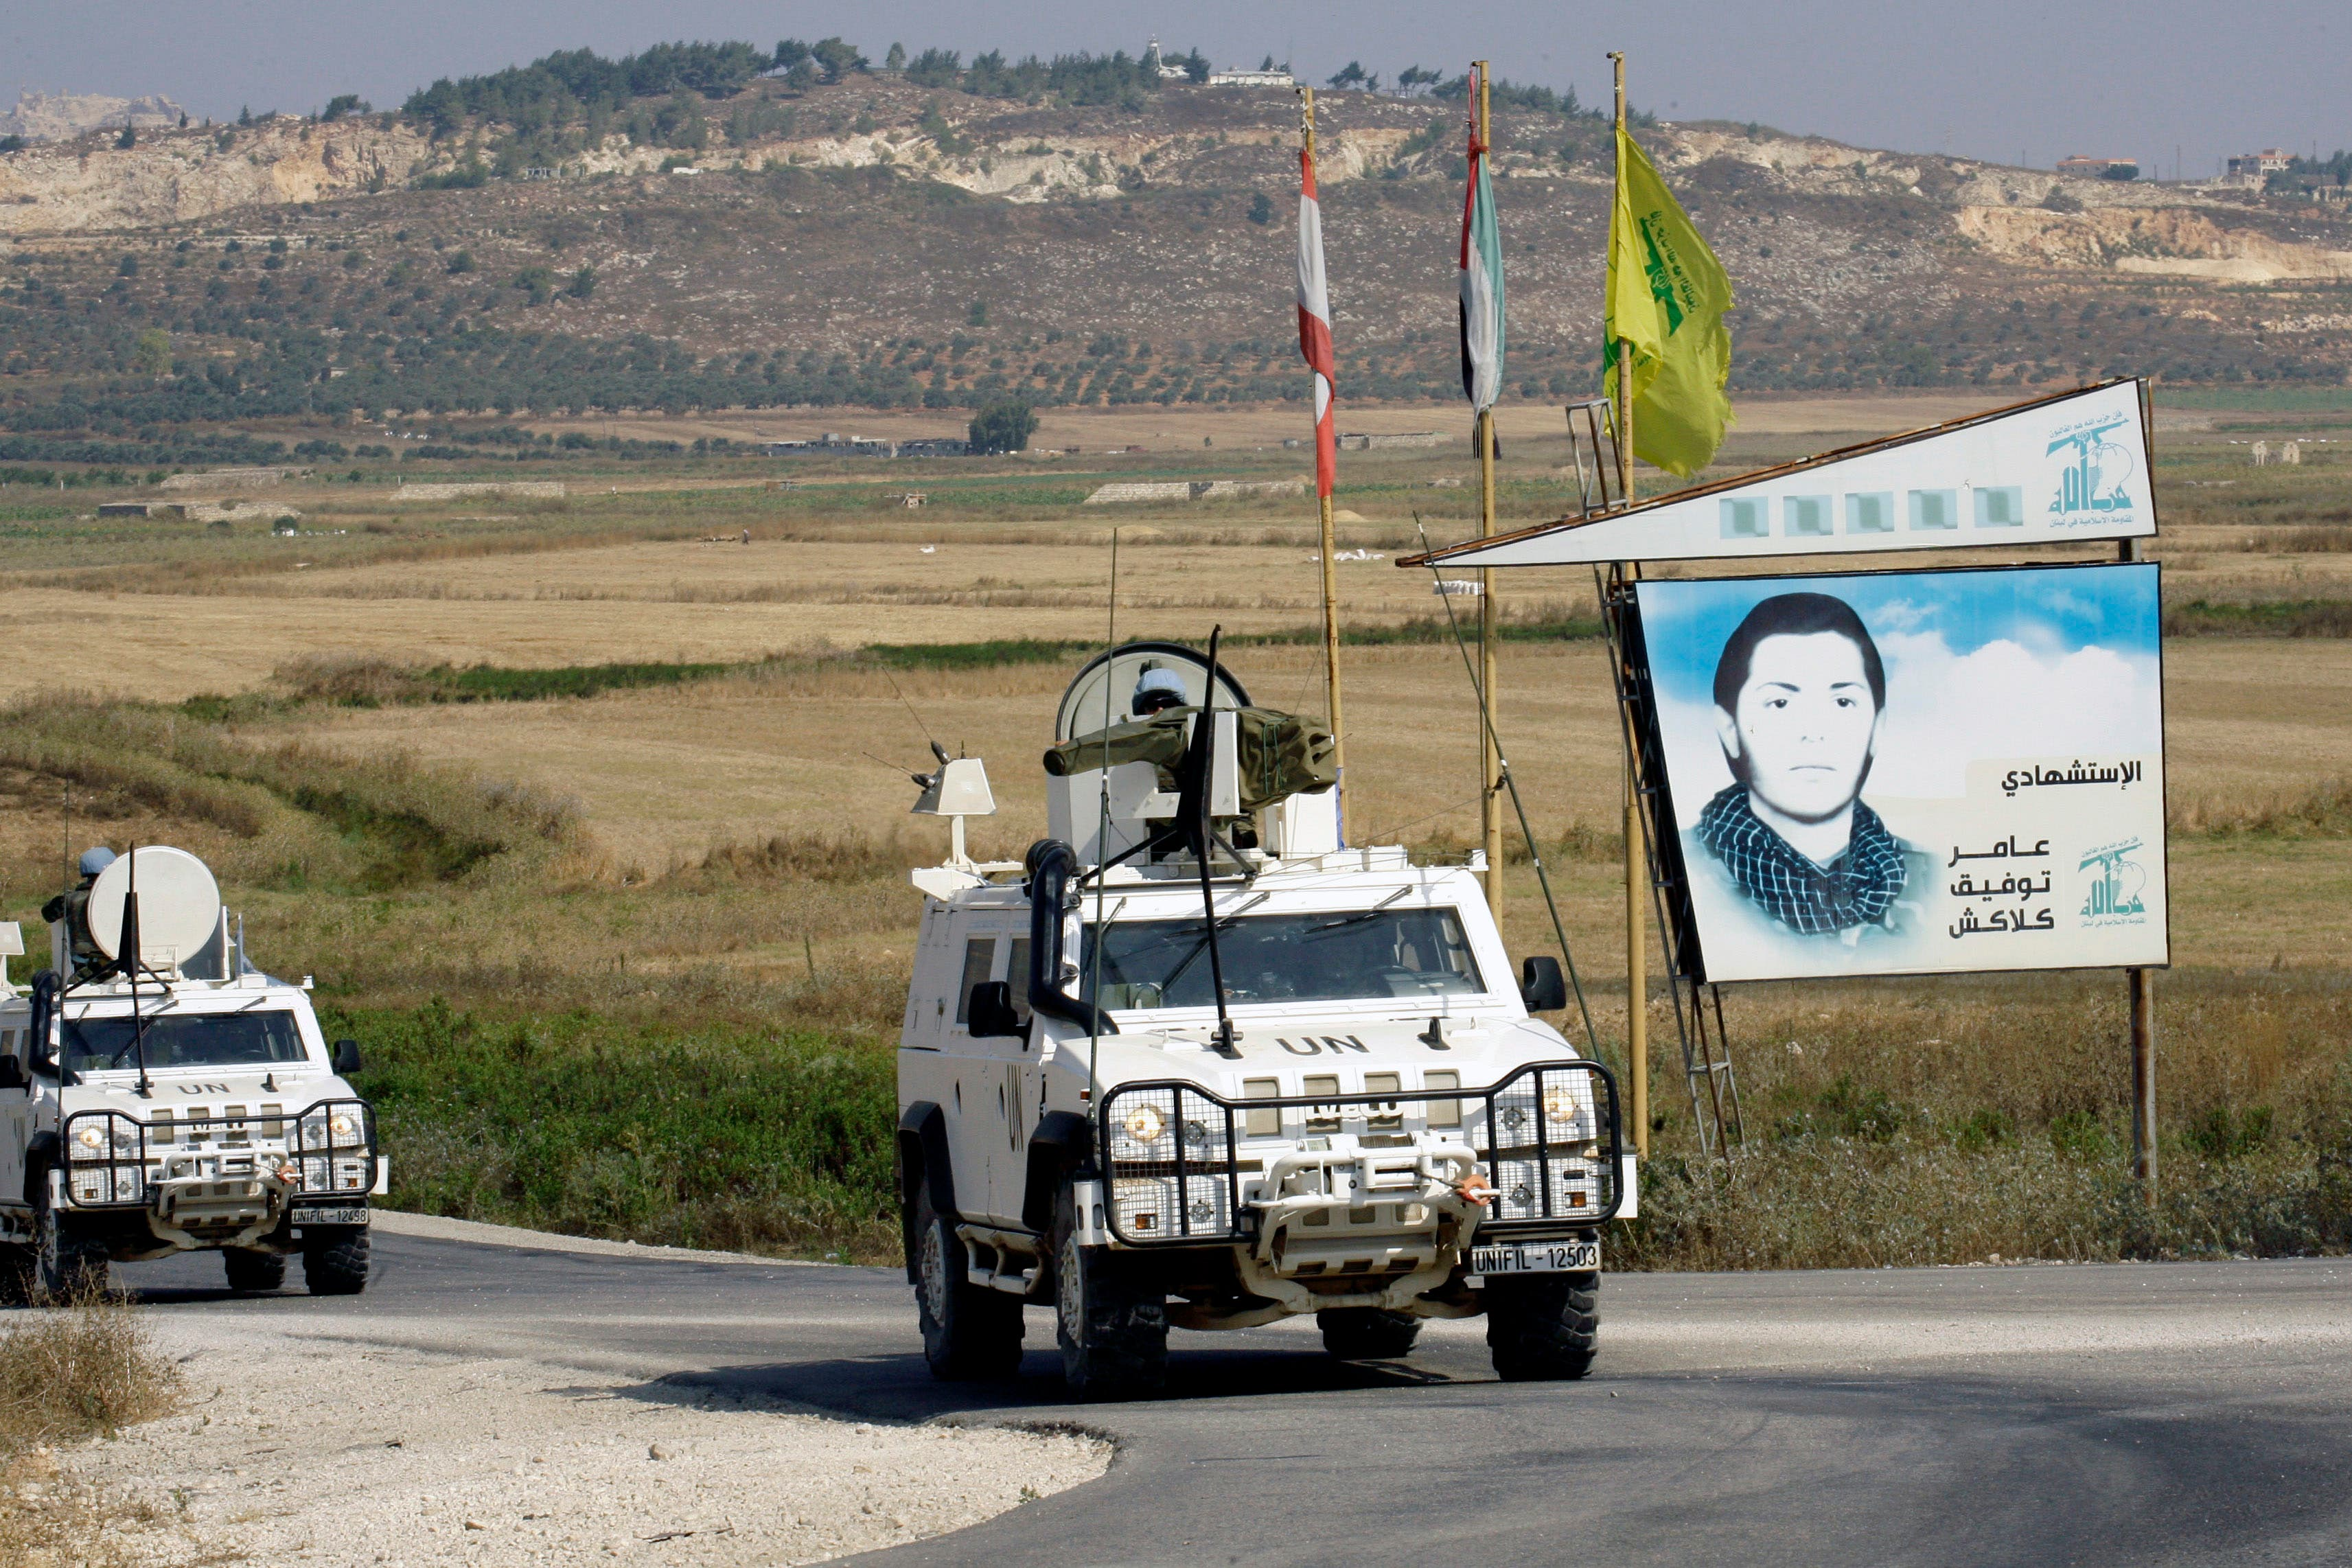 Spanish peacekeepers of the United Nations Interim Force in Lebanon (UNIFIL) patrol in their armoured vehicles near a placard of Hezbollah (AFP/MAHMOUD ZAYYAT)